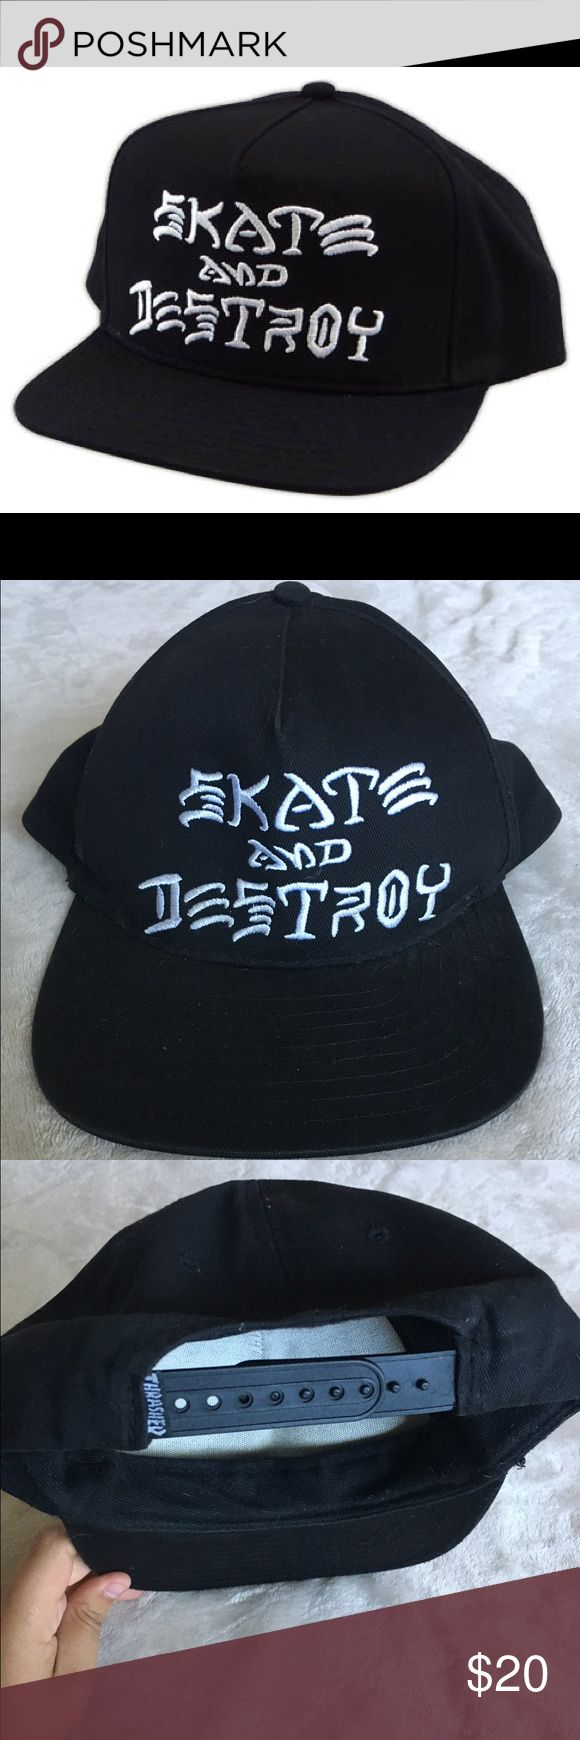 Thrasher Skate and Destroy Hat In good condition. I tried taking off the little fuzz due to it just sitting in my closet. Before I sent it out, I'll do my best to remove it all. Other than that, no signs of wear and tear. 100% Cotton Price FIRM. Thrasher Accessories Hats